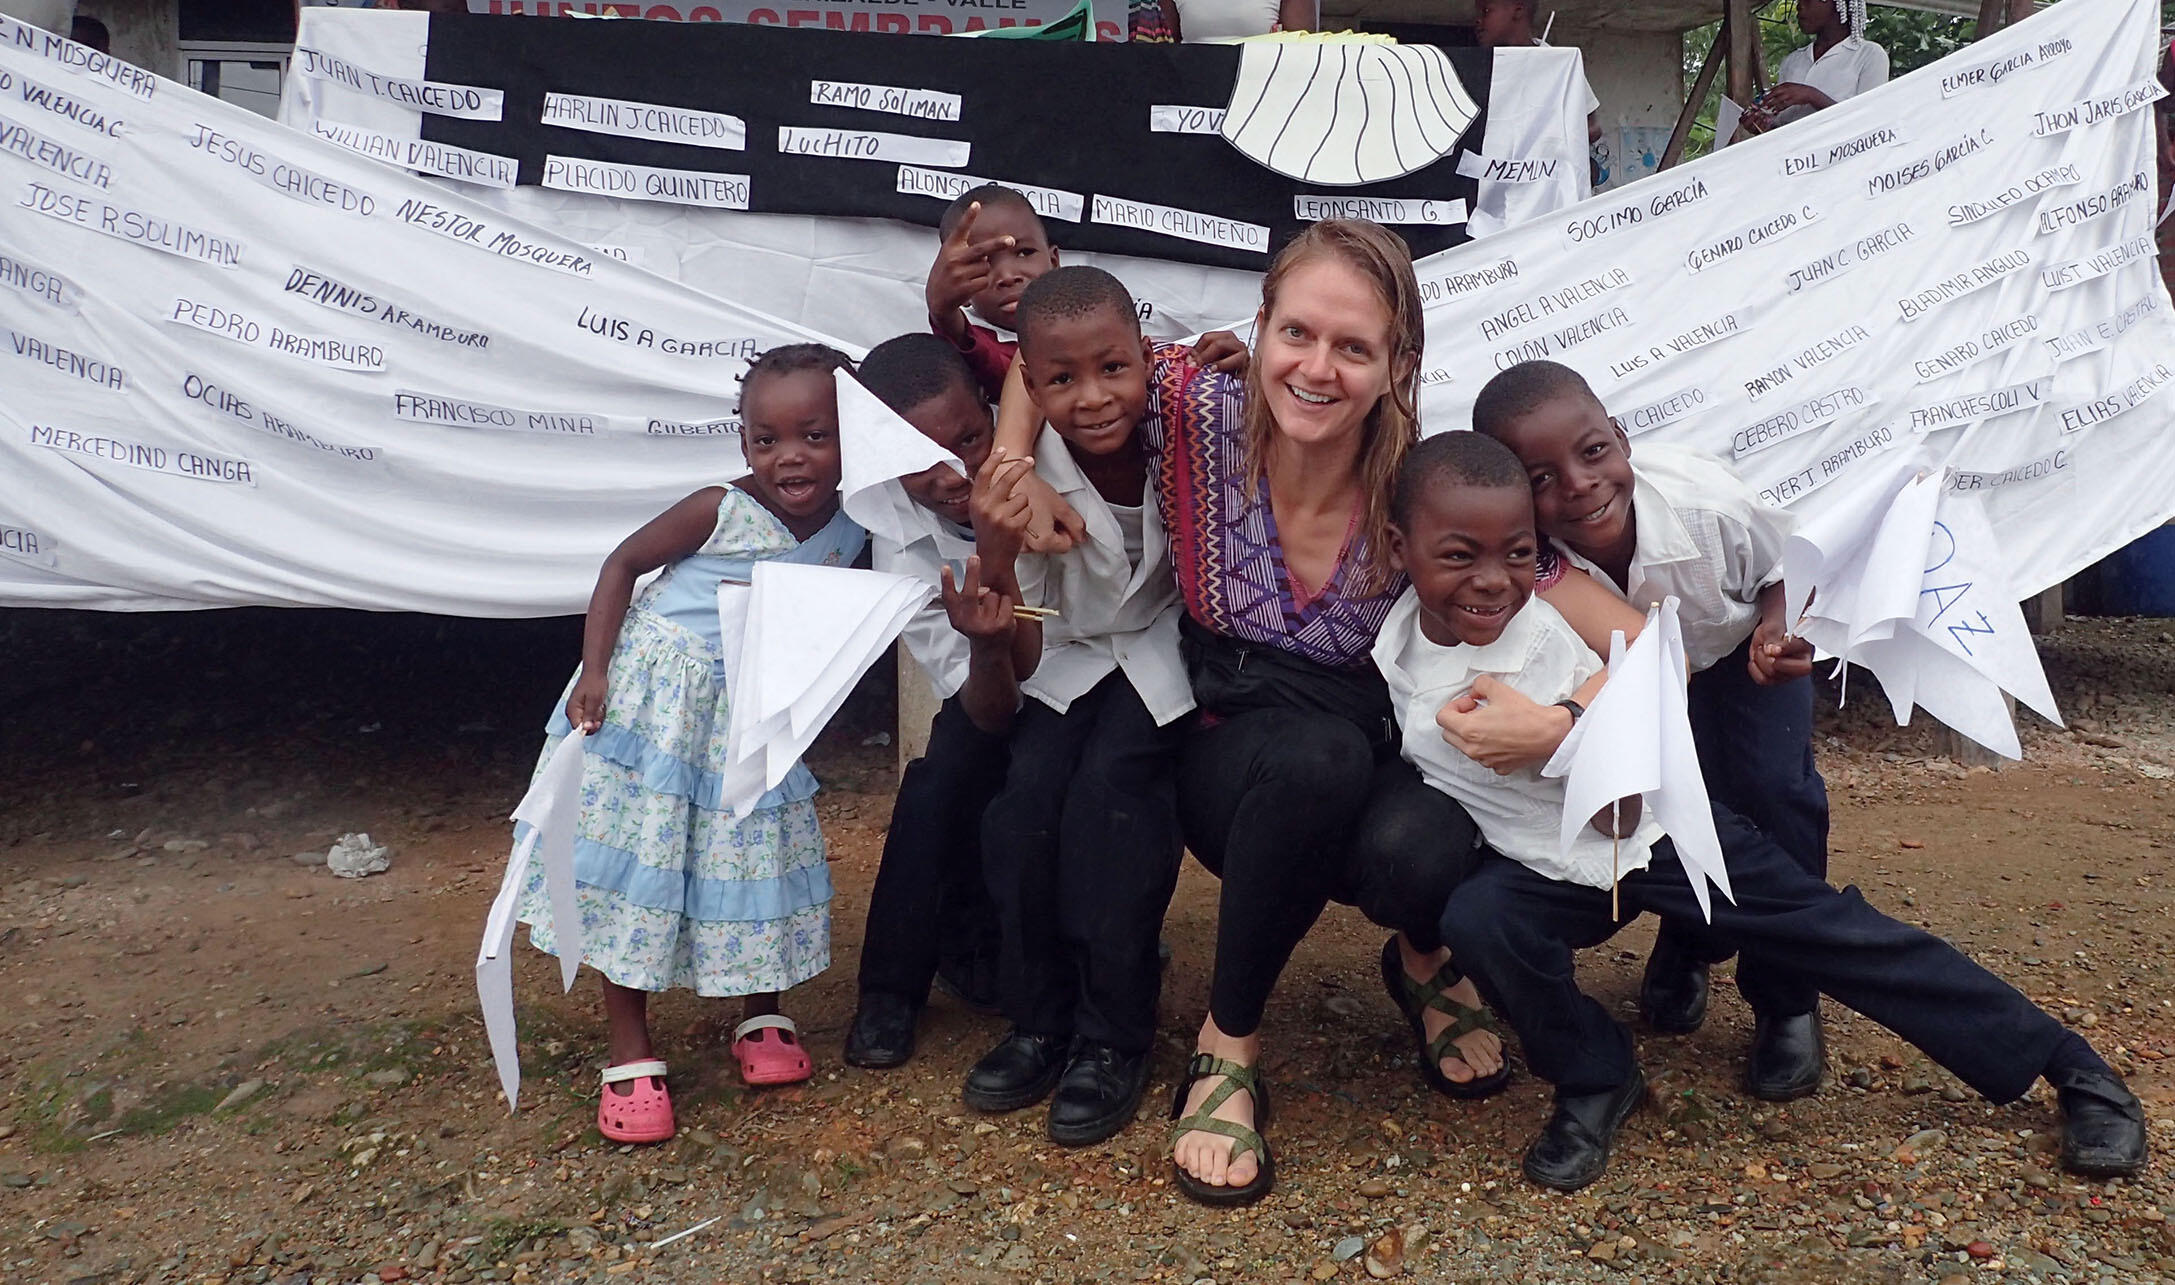 Author Lauren Withey with a group of Afro-Colombian children after a peace march with a banner bearing the names of local victims of the conflict. (Photo courtesy of Lauren Withey.)